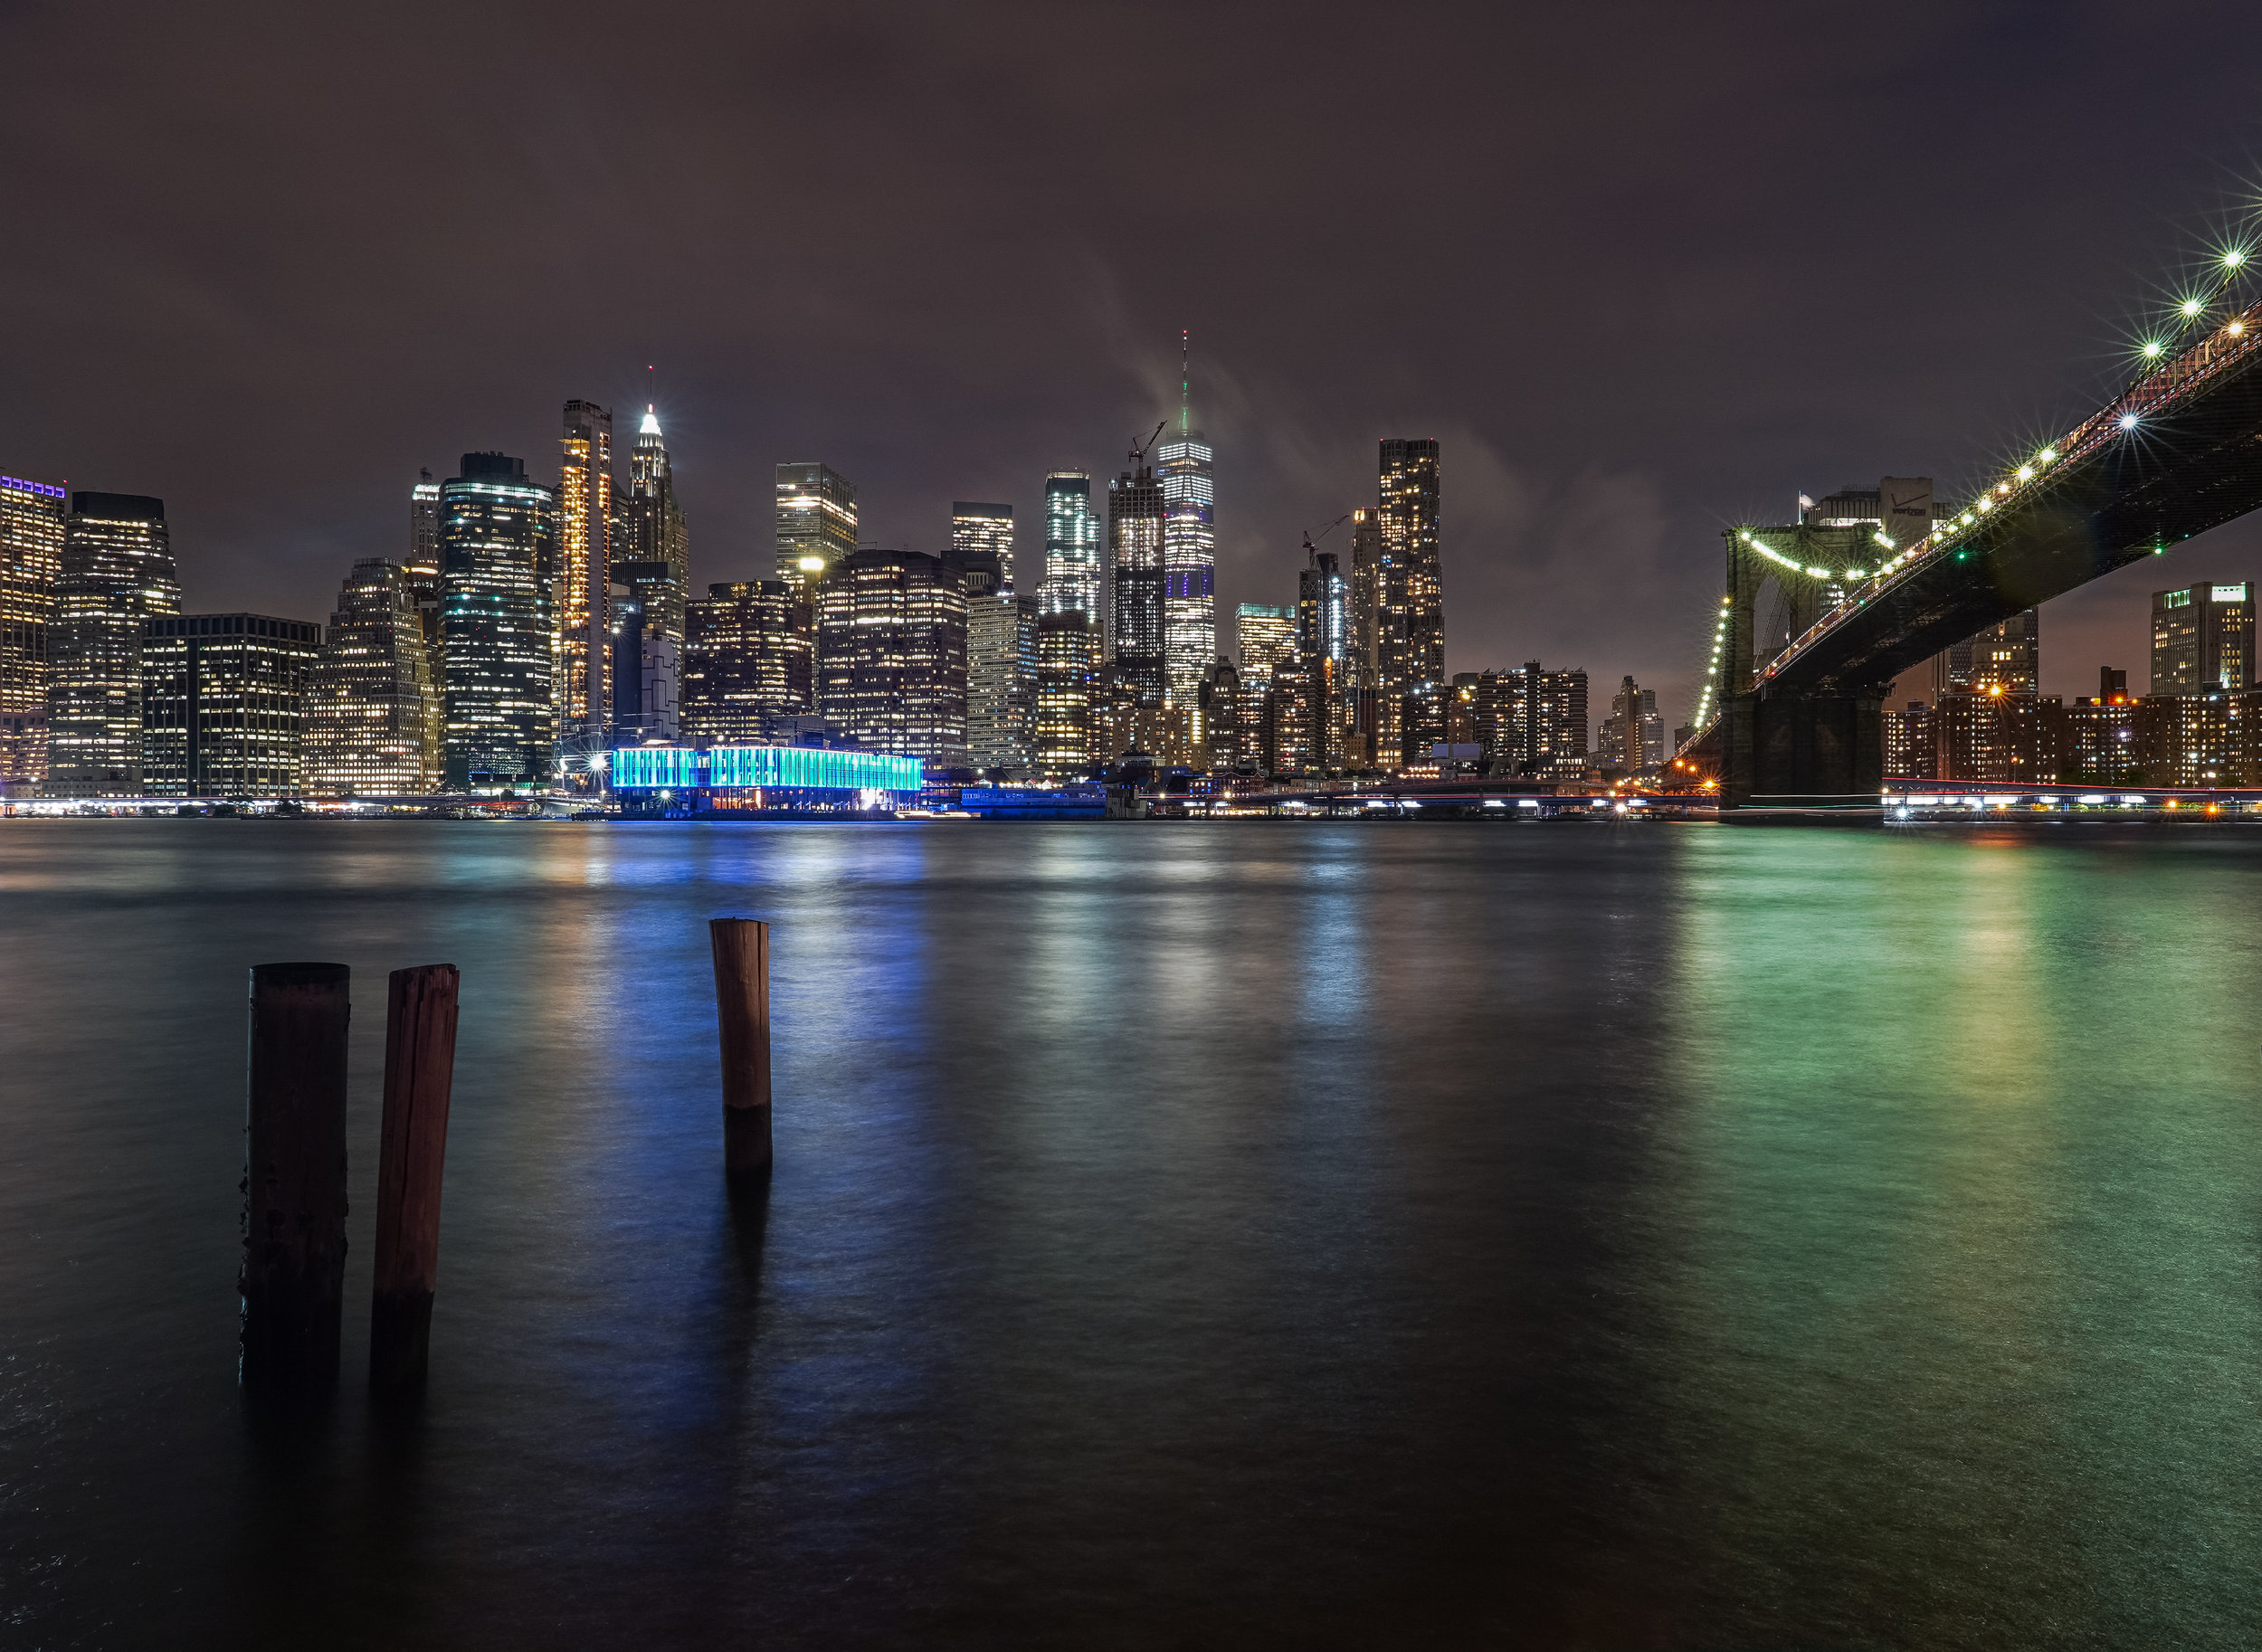 """Sony 16-55 at 16mm - 30"""" f/11 ISO 100"""